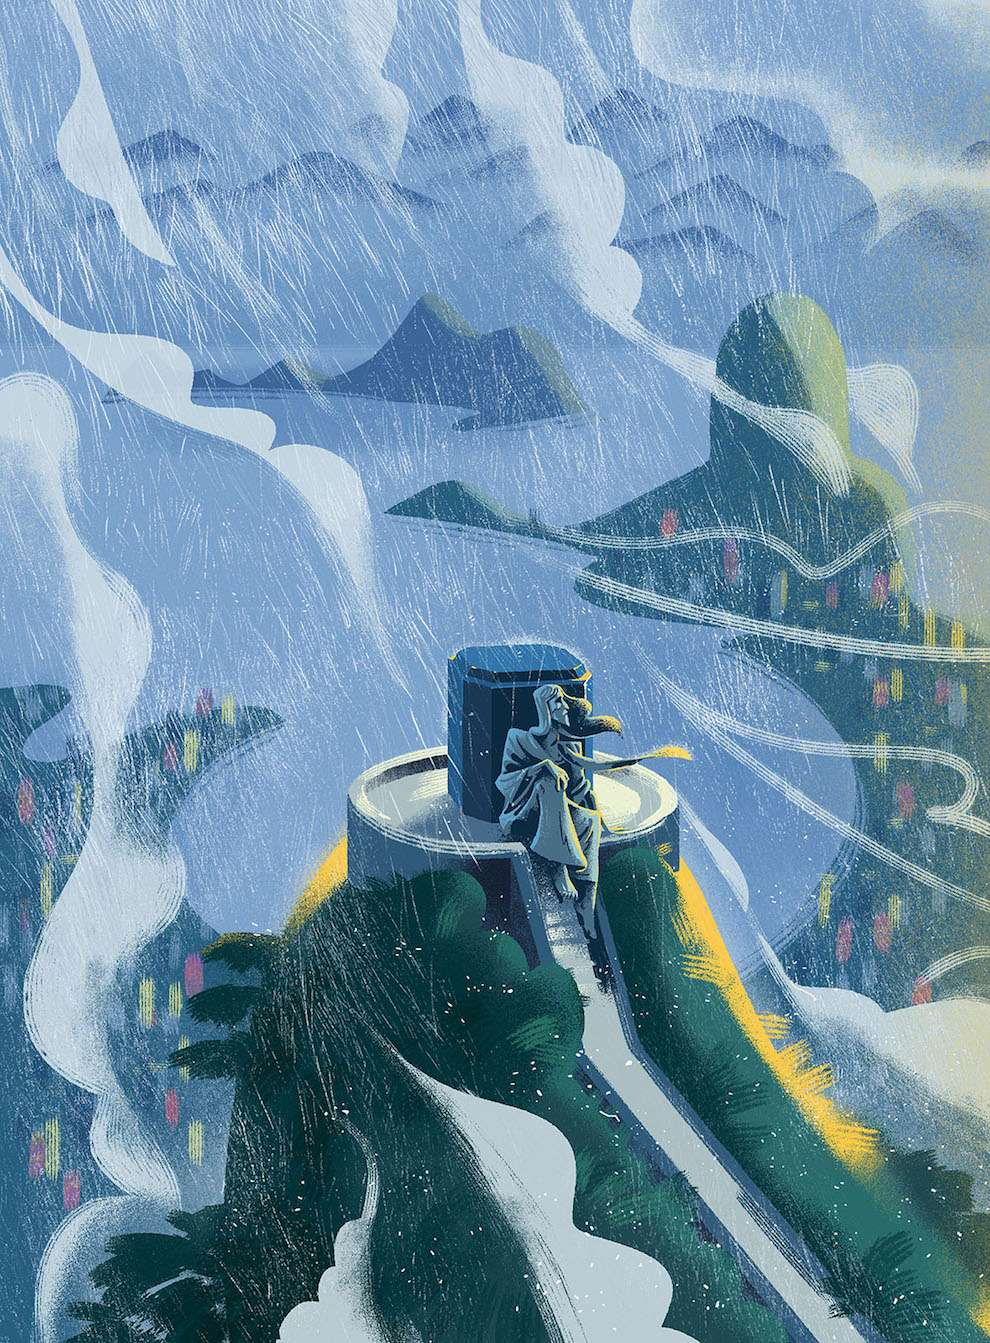 Jan Bielecki, Digital textural illustration for a magazine cover. Man sitting at the top of a hill during a rainy day